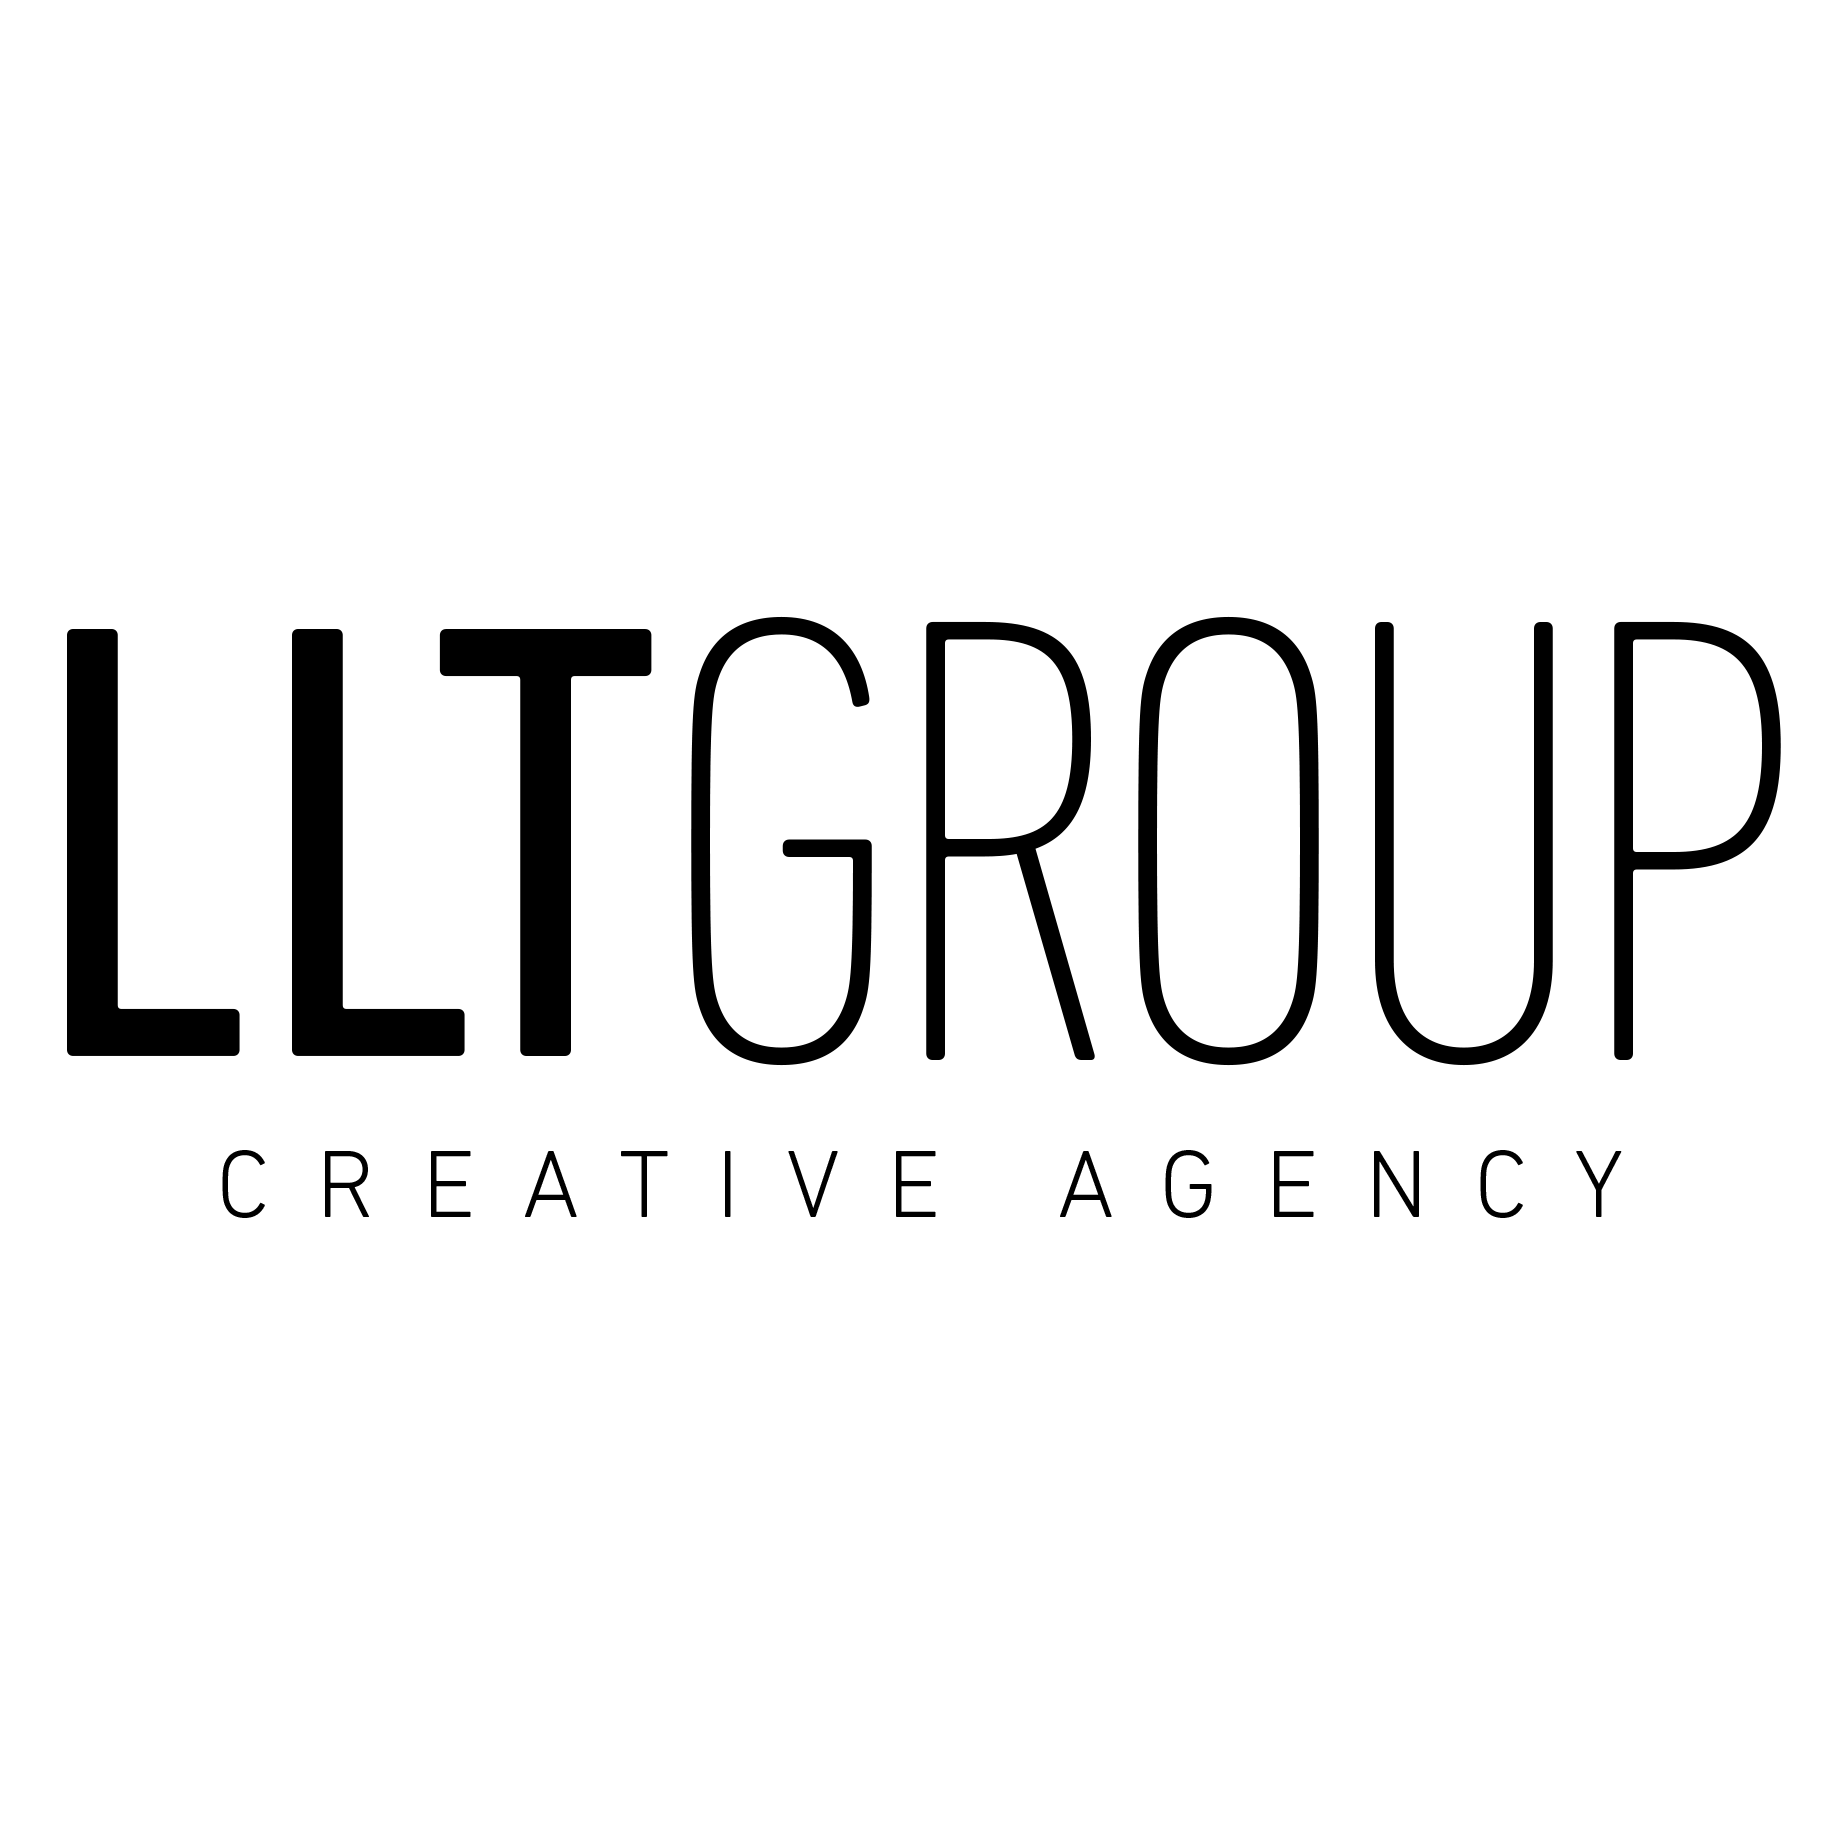 image of the LLT Group